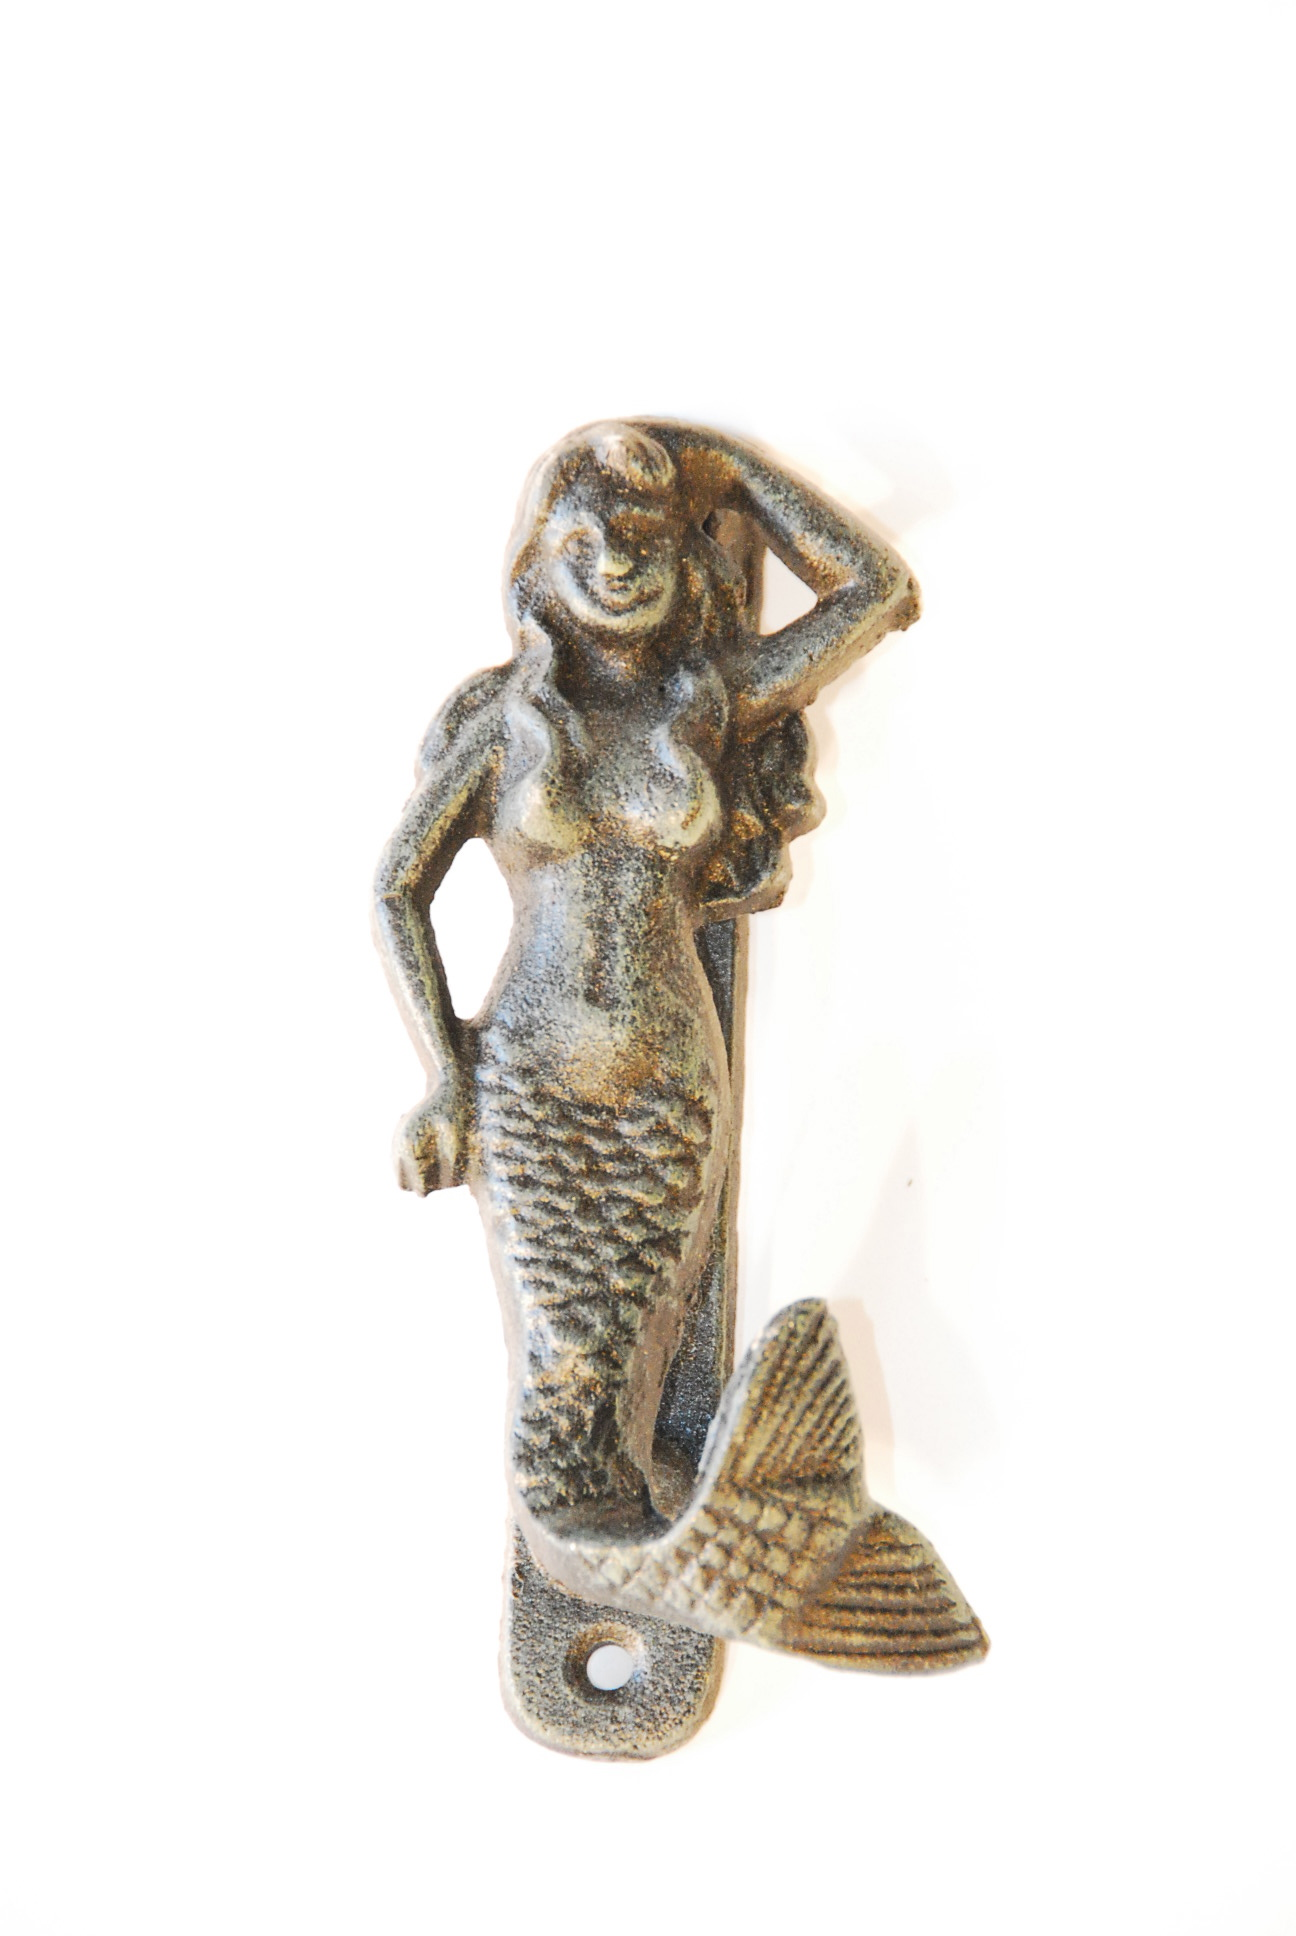 Mermaid Door Knocker, 6u2033 Long, Cast Iron, 6 In A Box